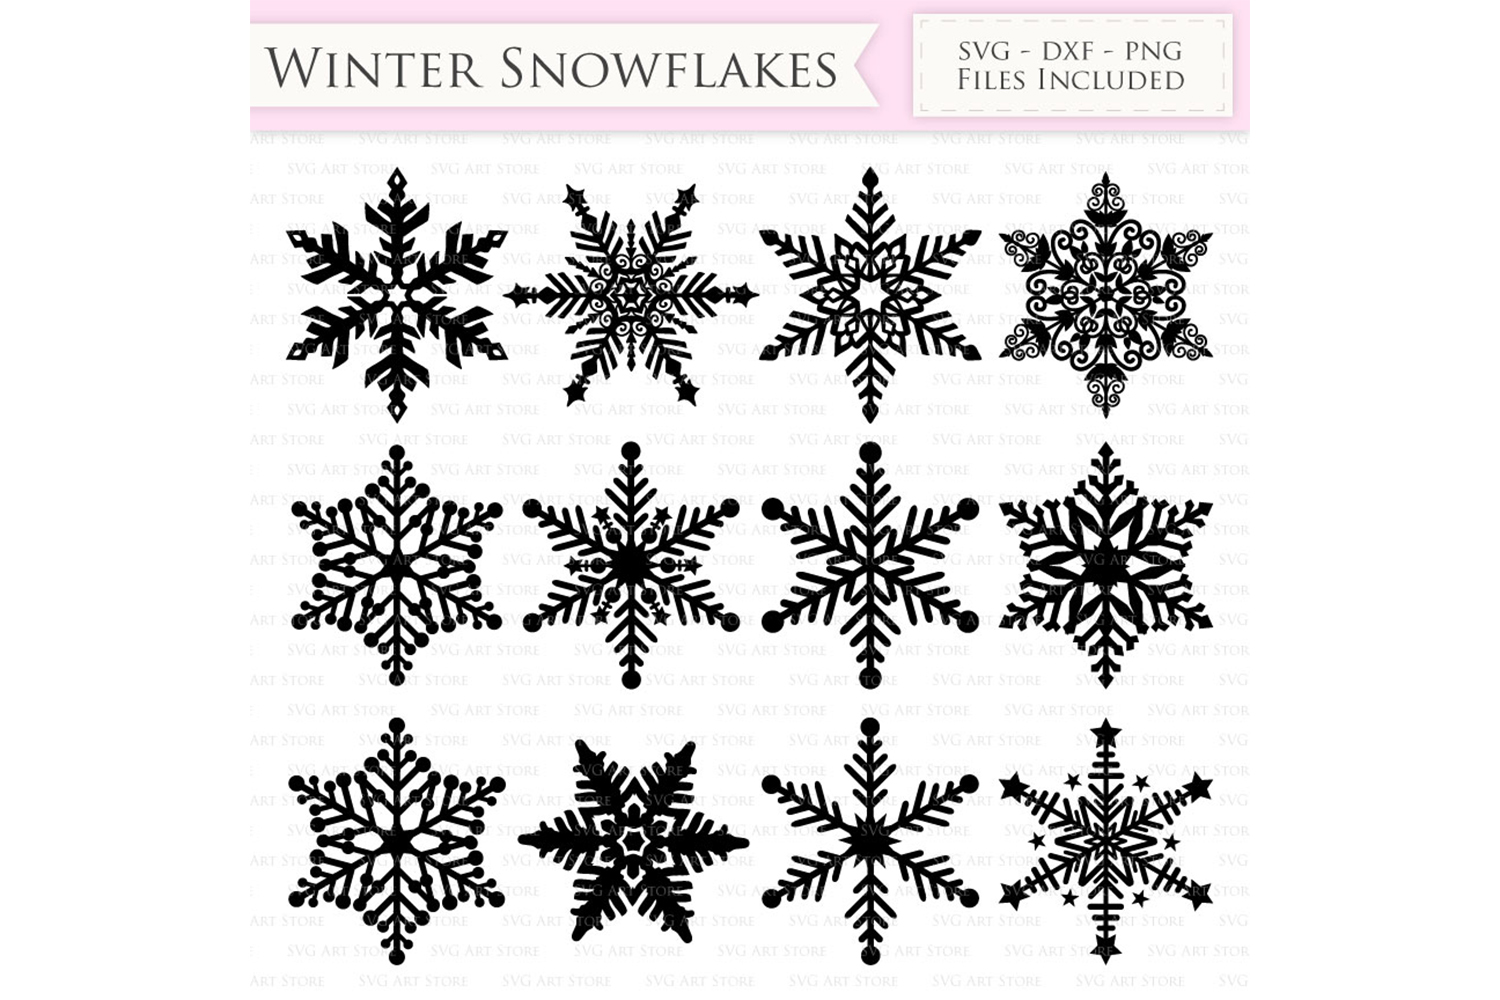 Winter Snowflakes SVG Snow svg cutting files Cricut and Silhouette SVG dxf png jpg included. Christmas Snowflake cutting files example image 1